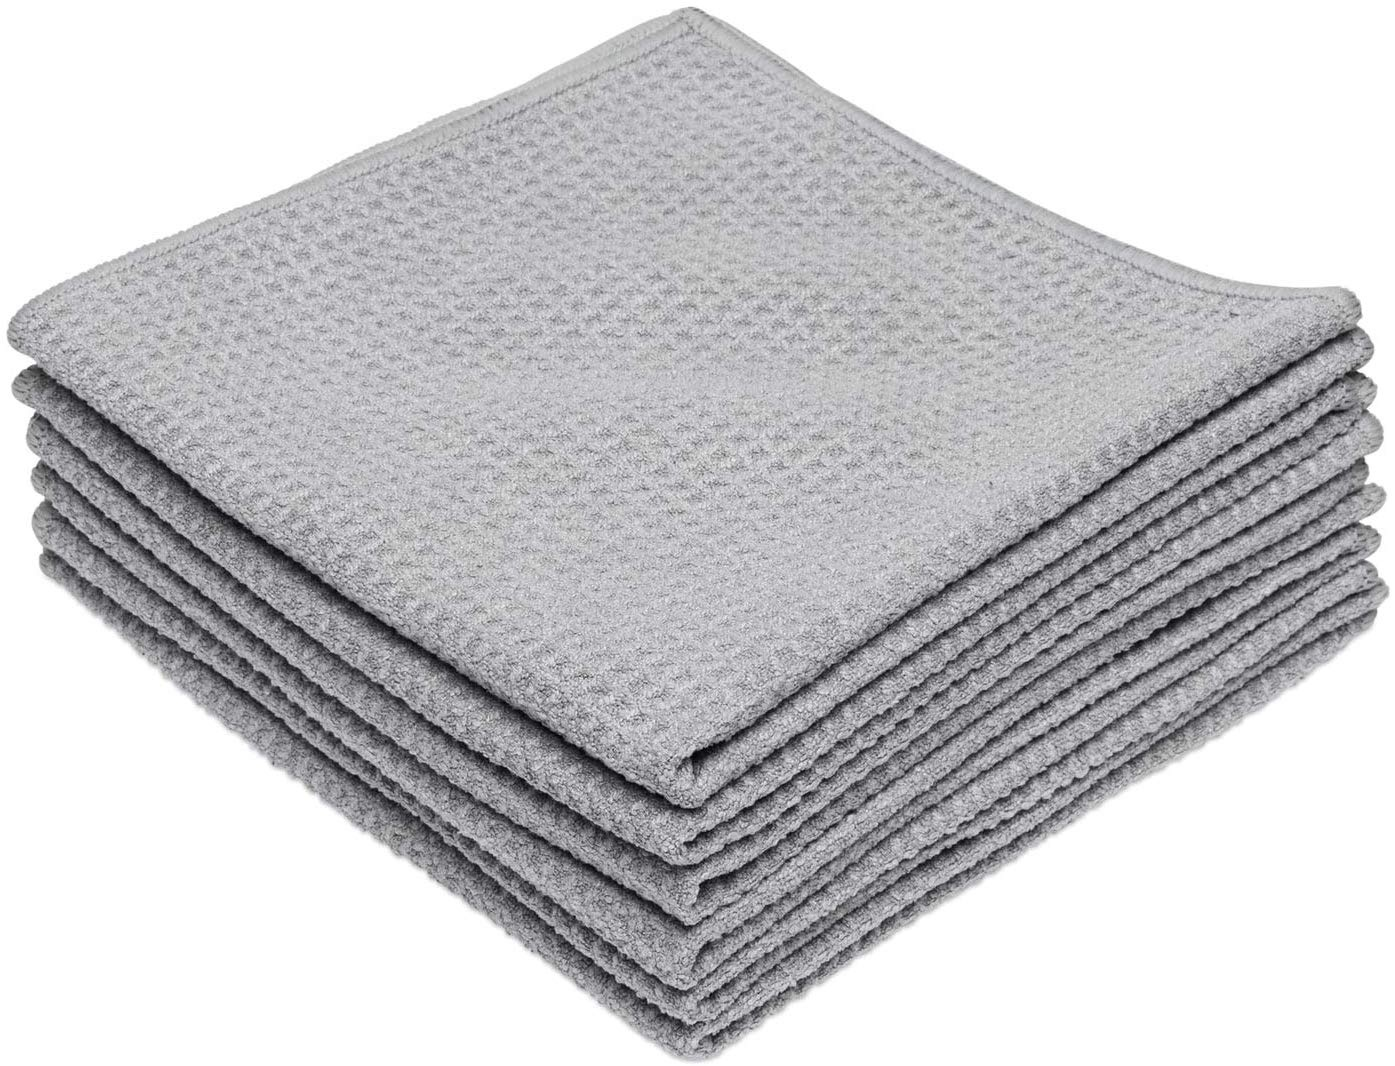 China supplier wholesale Microfiber Waffle Weave Kitchen Dish Drying Towels